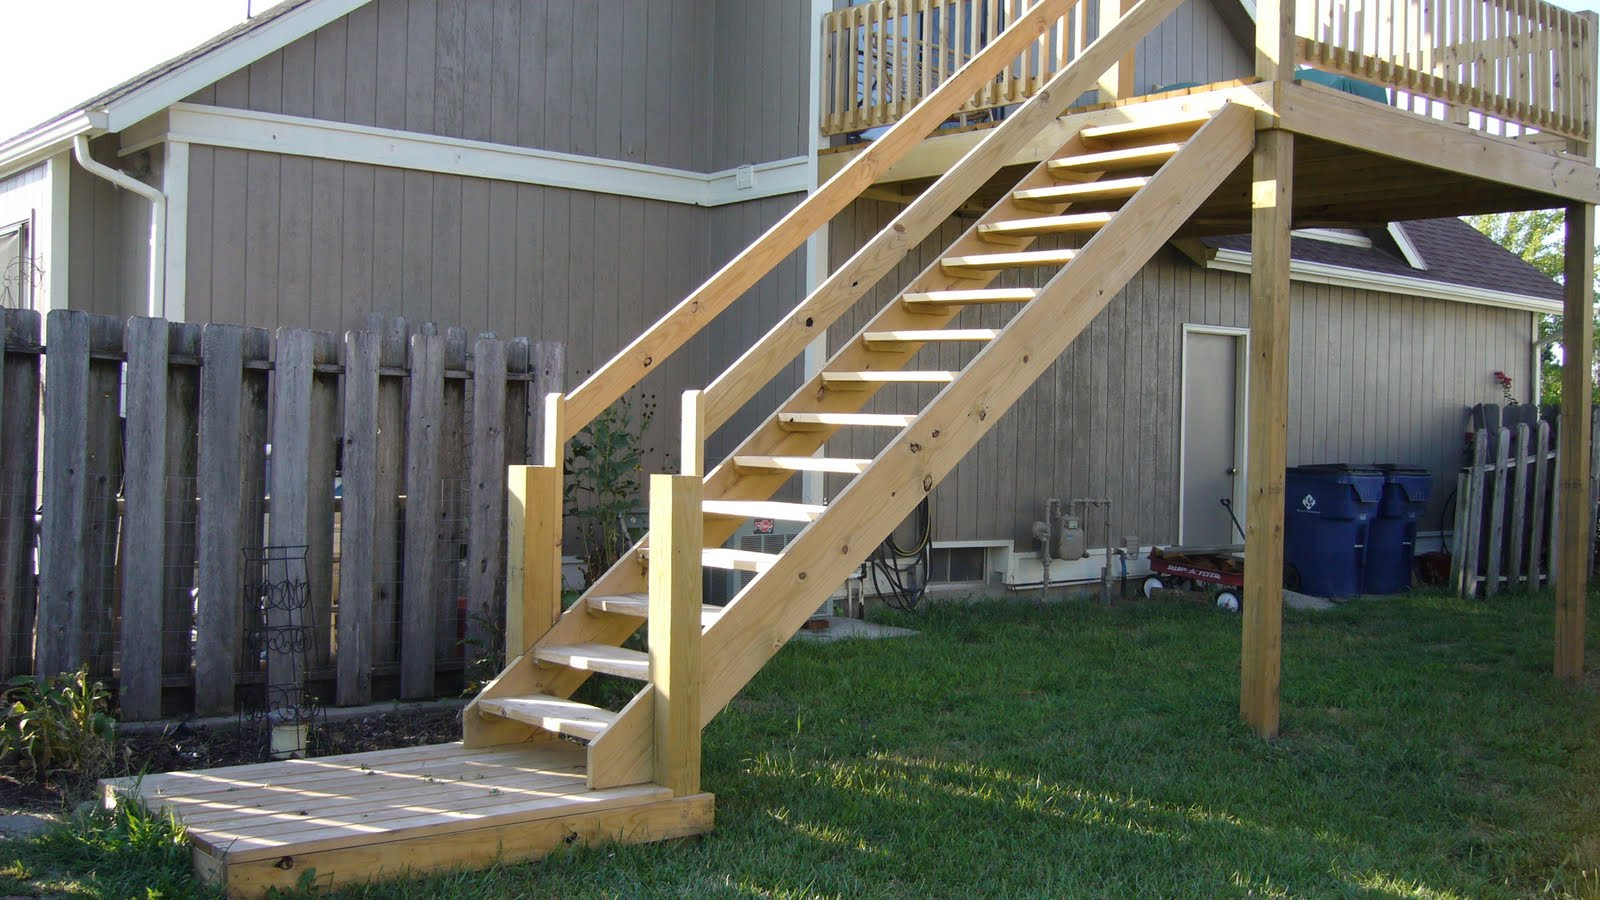 central kansas home building repair exterior deck stair. Black Bedroom Furniture Sets. Home Design Ideas